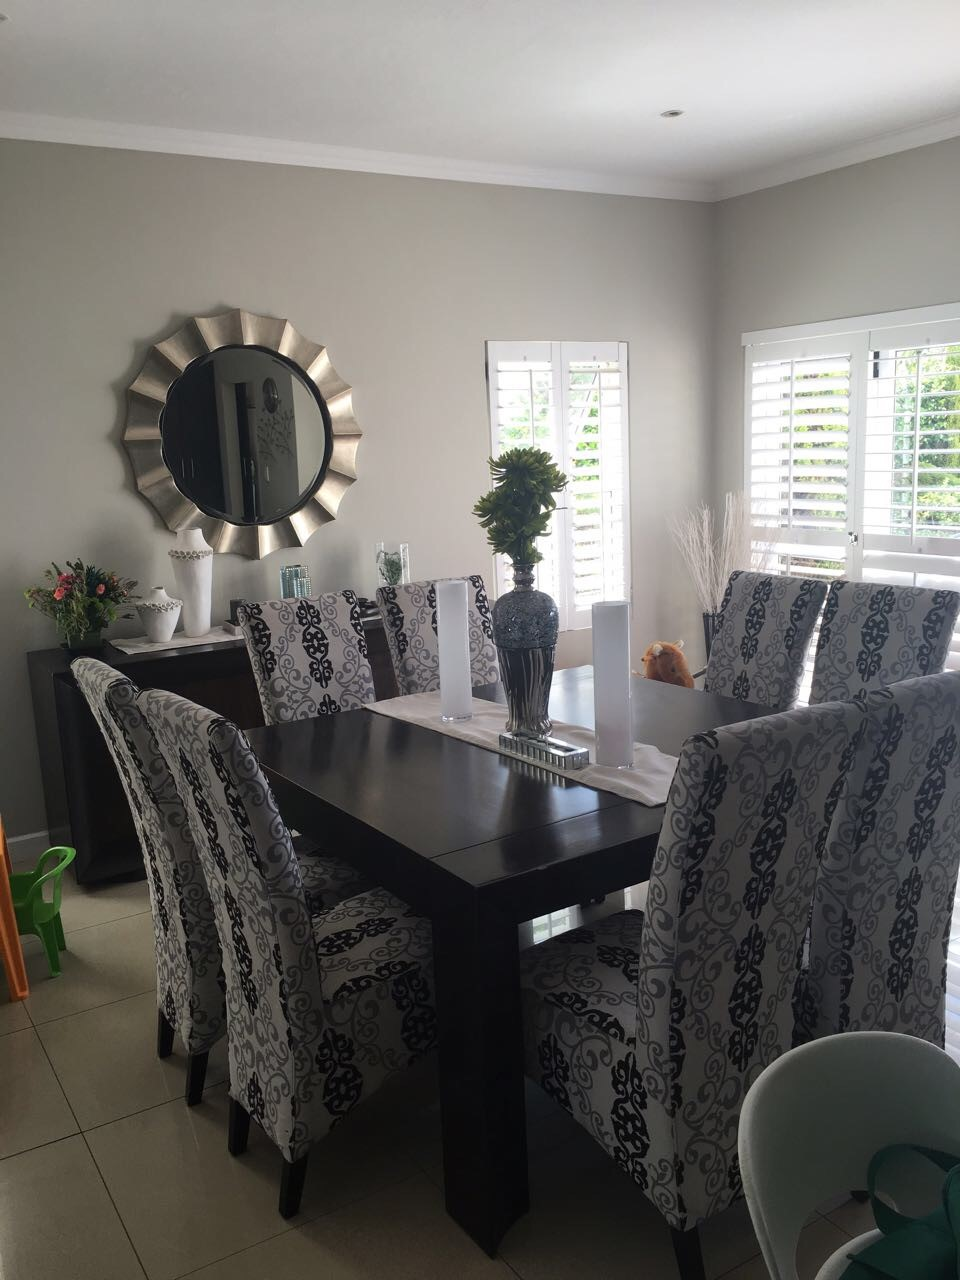 c8be8ff33bfb0 Modern excellent condition 8 seater dining table and chairs